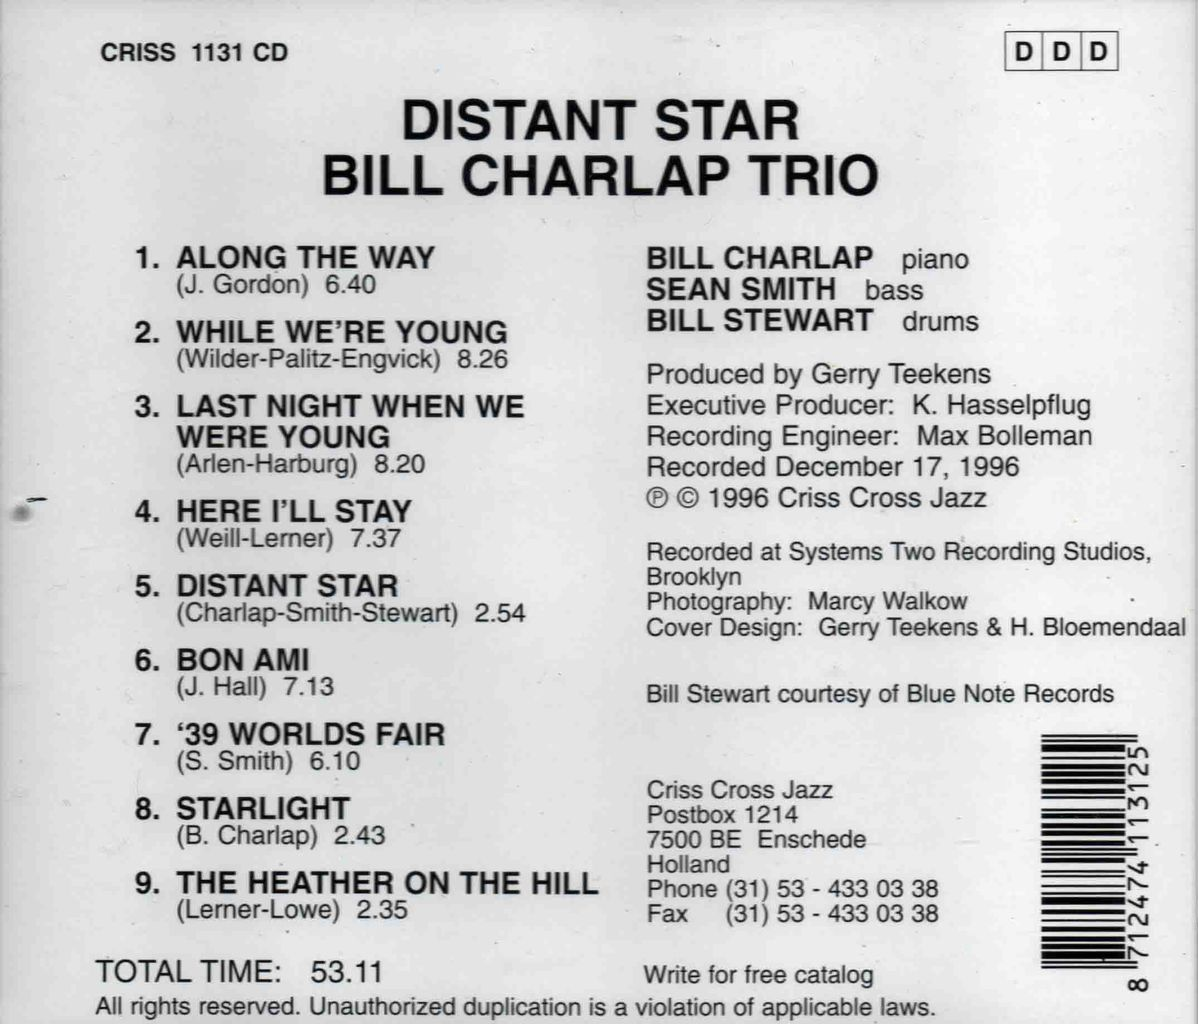 DISTANT STAR-2